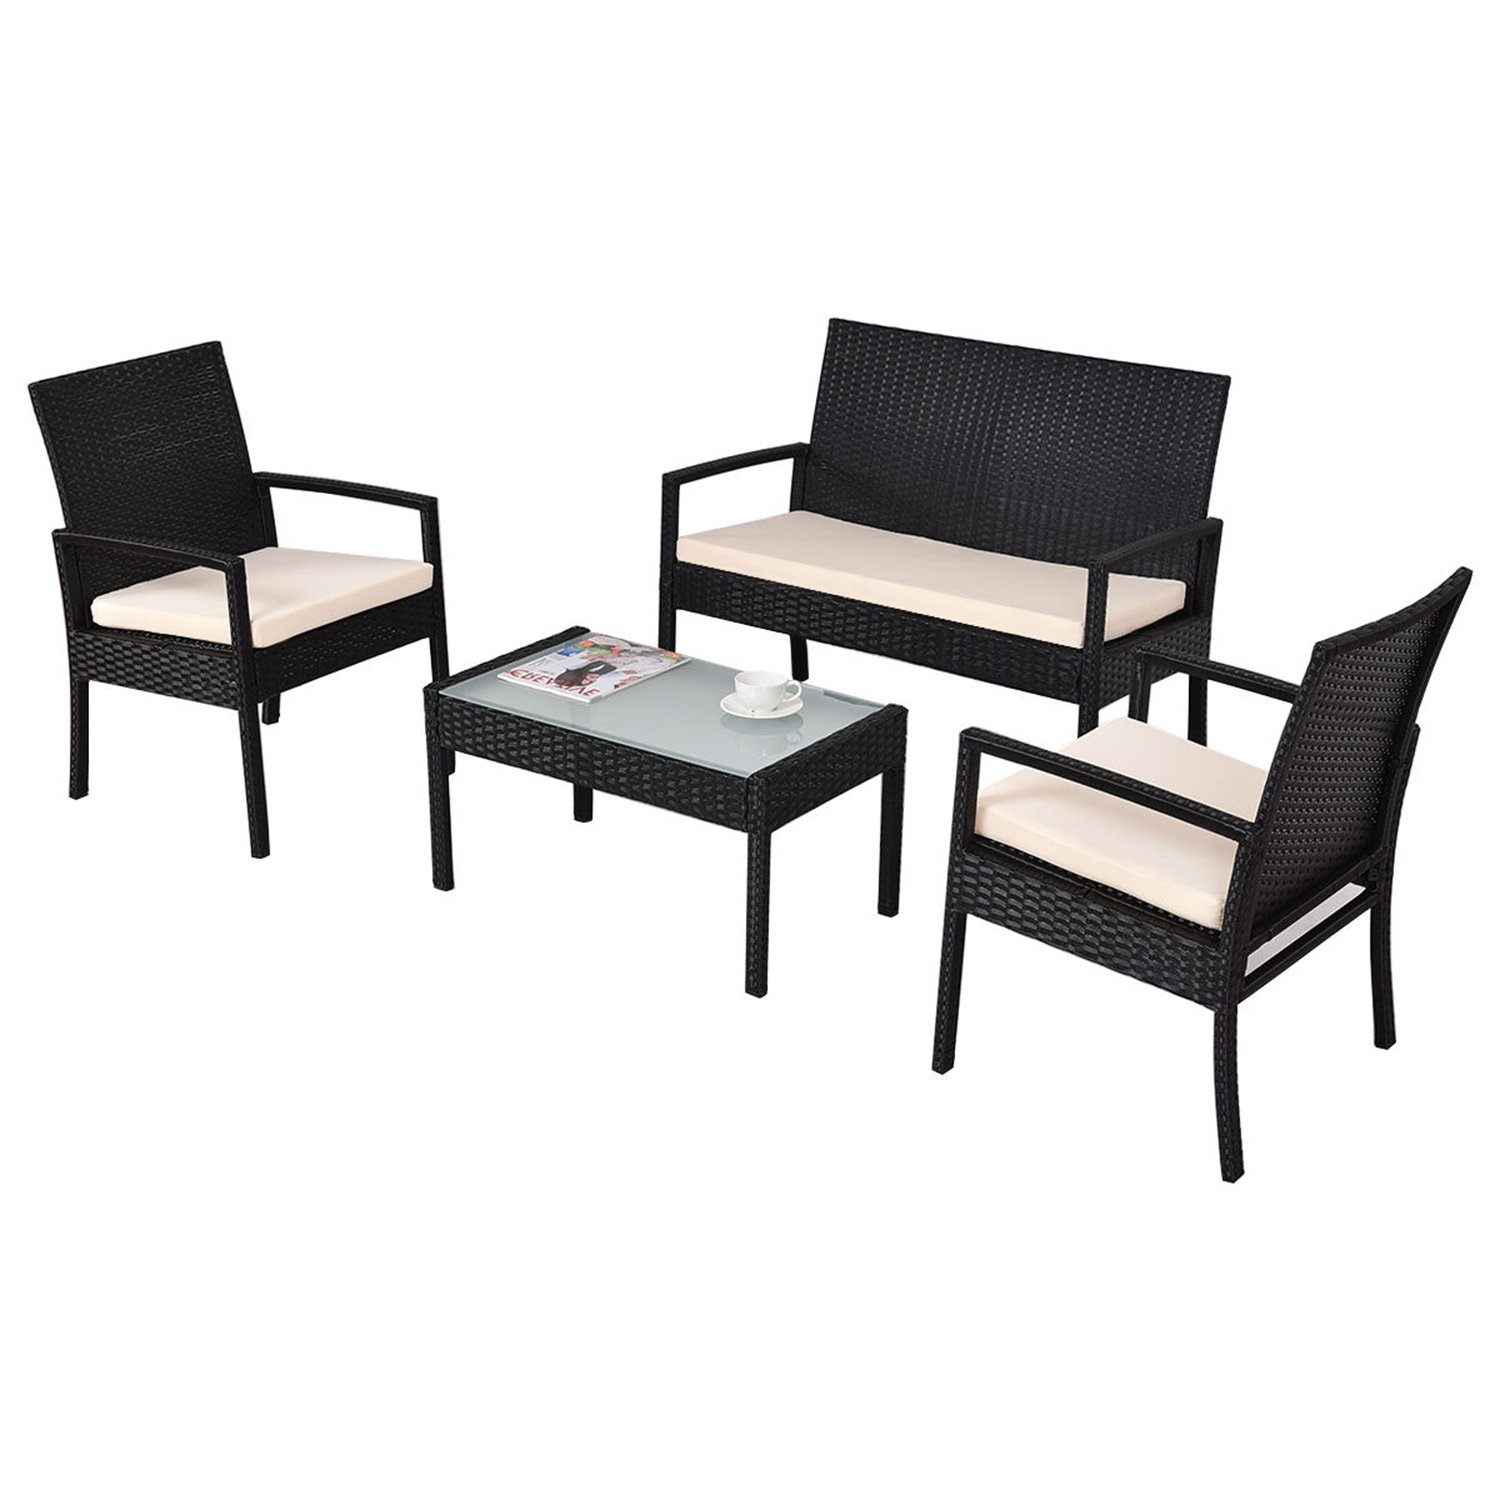 Outdoor Patio Furniture Set Cushioned 4 Pieces Wicker Patio Set Table, Two Chairs and a Loveseat Black Finish and White Cushions Outdoor Furniture Lawn Rattan Garden Set